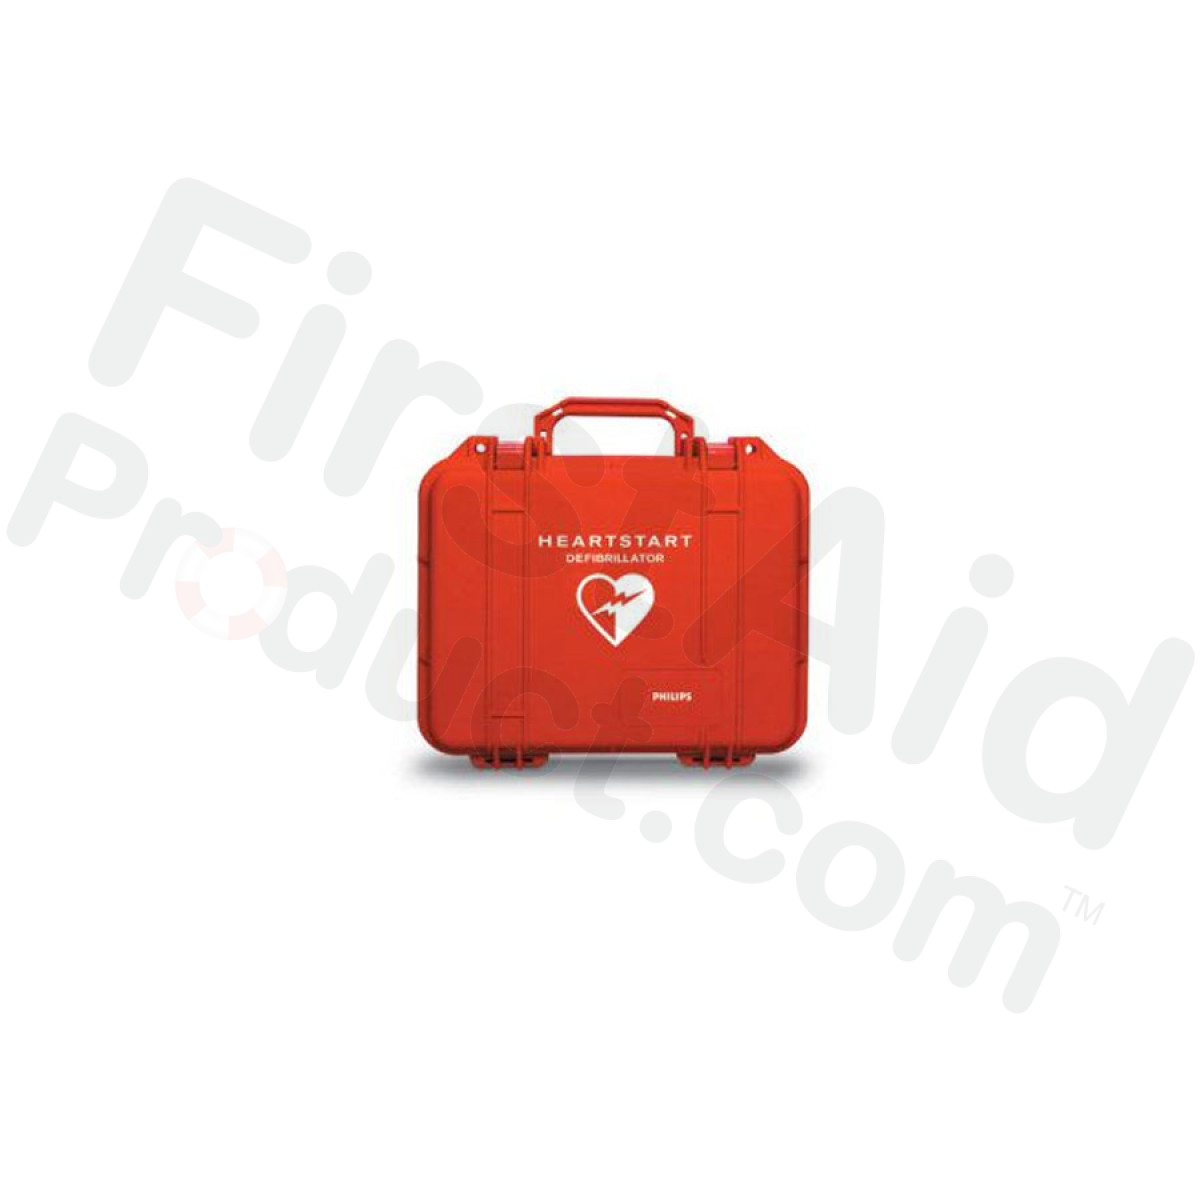 first aid product com philips hard shell pelican carry case rh first aid product com Philips Electronics Manuals Philips Electronics Manuals